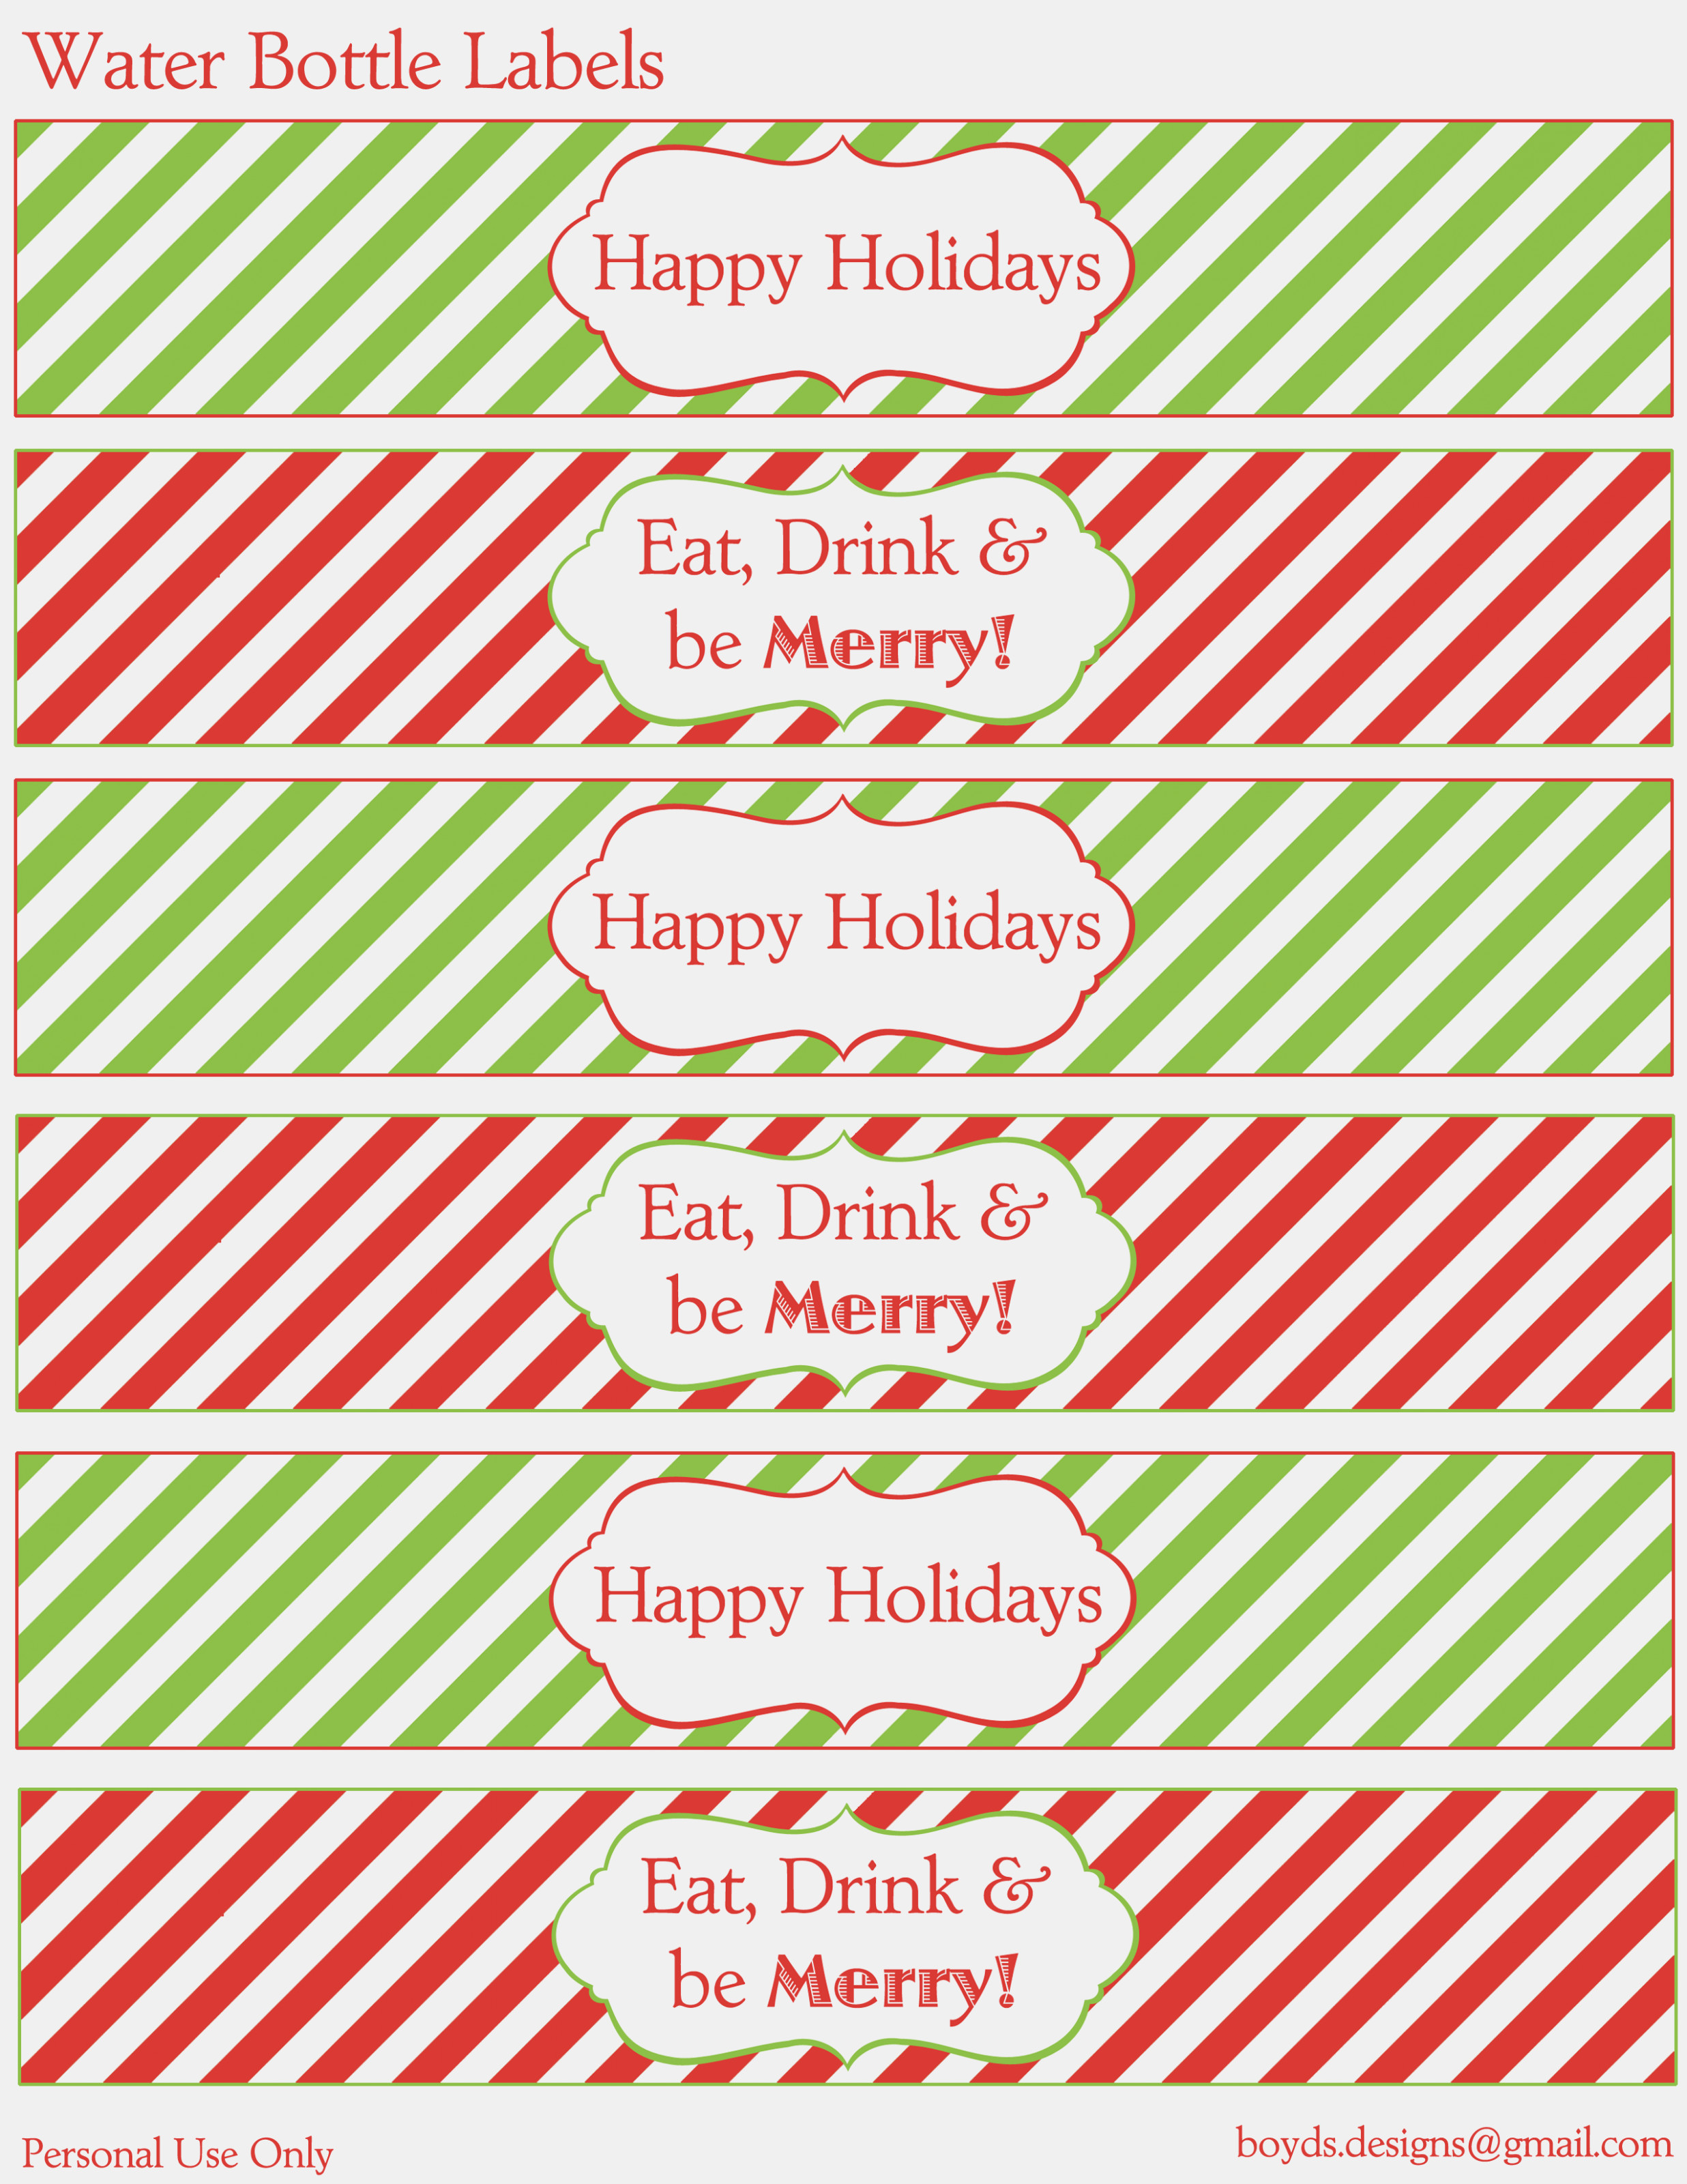 Water Bottle Printables For Christmas – Christmas Printables – Print - Christmas Water Bottle Labels Free Printable